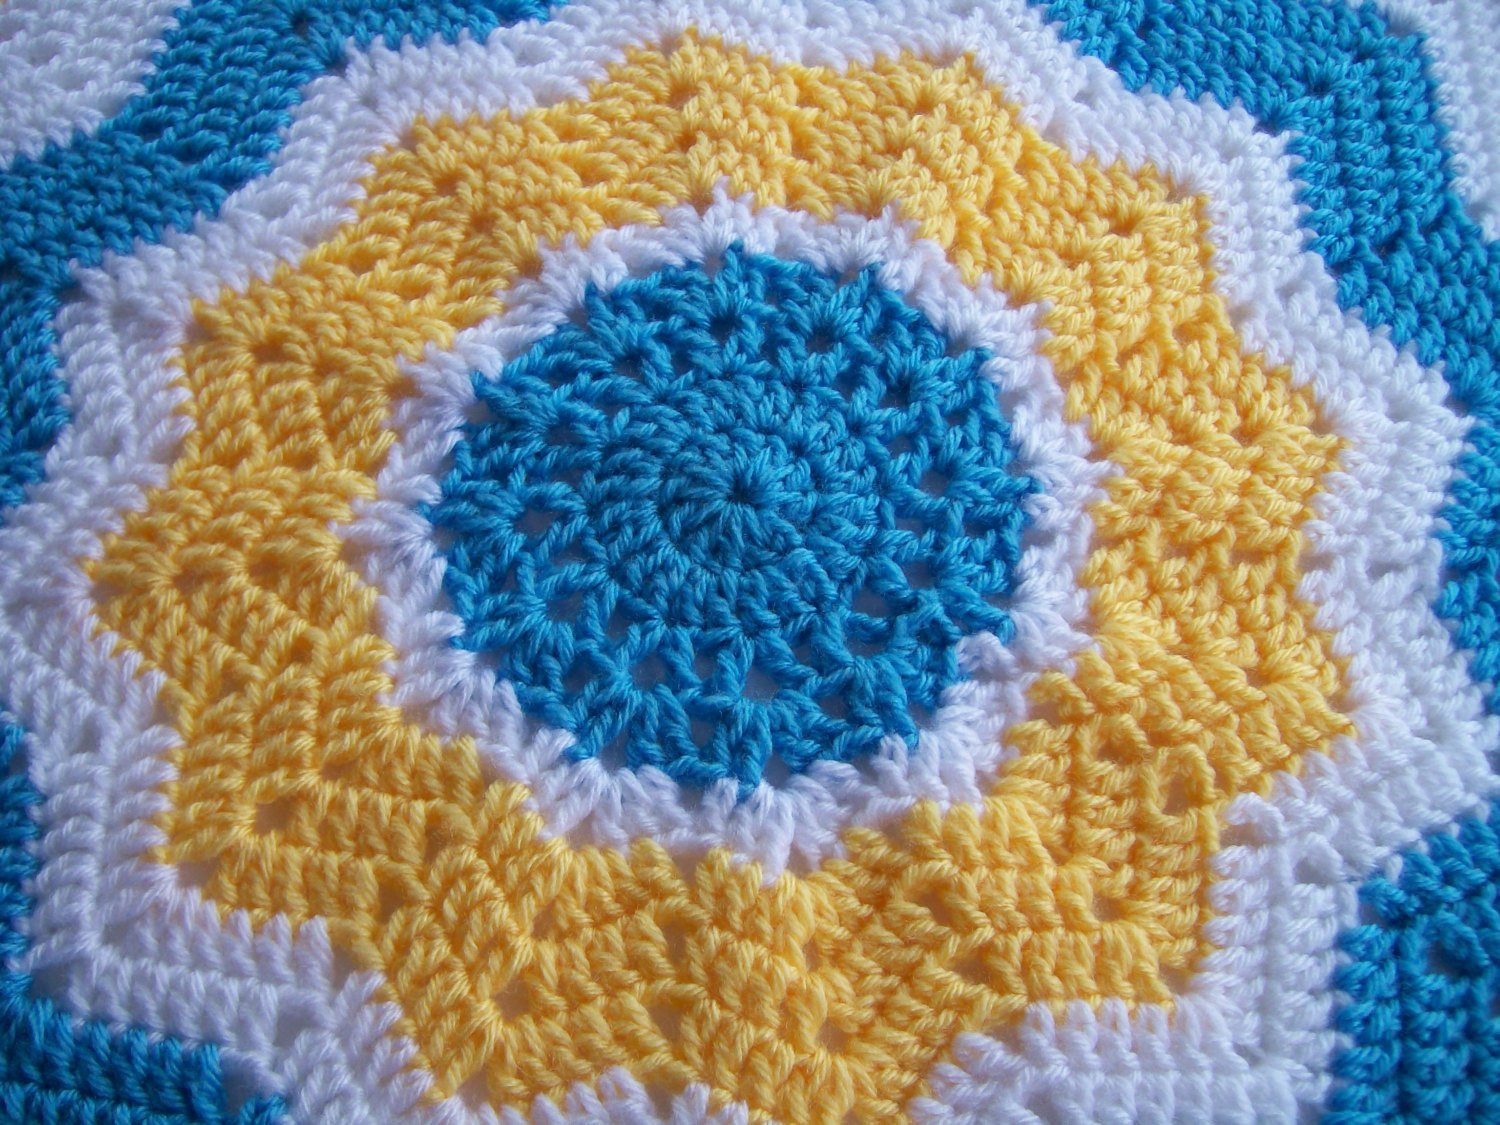 Crocheted Round Ripple Baby Afghan in Blue Yellow and White